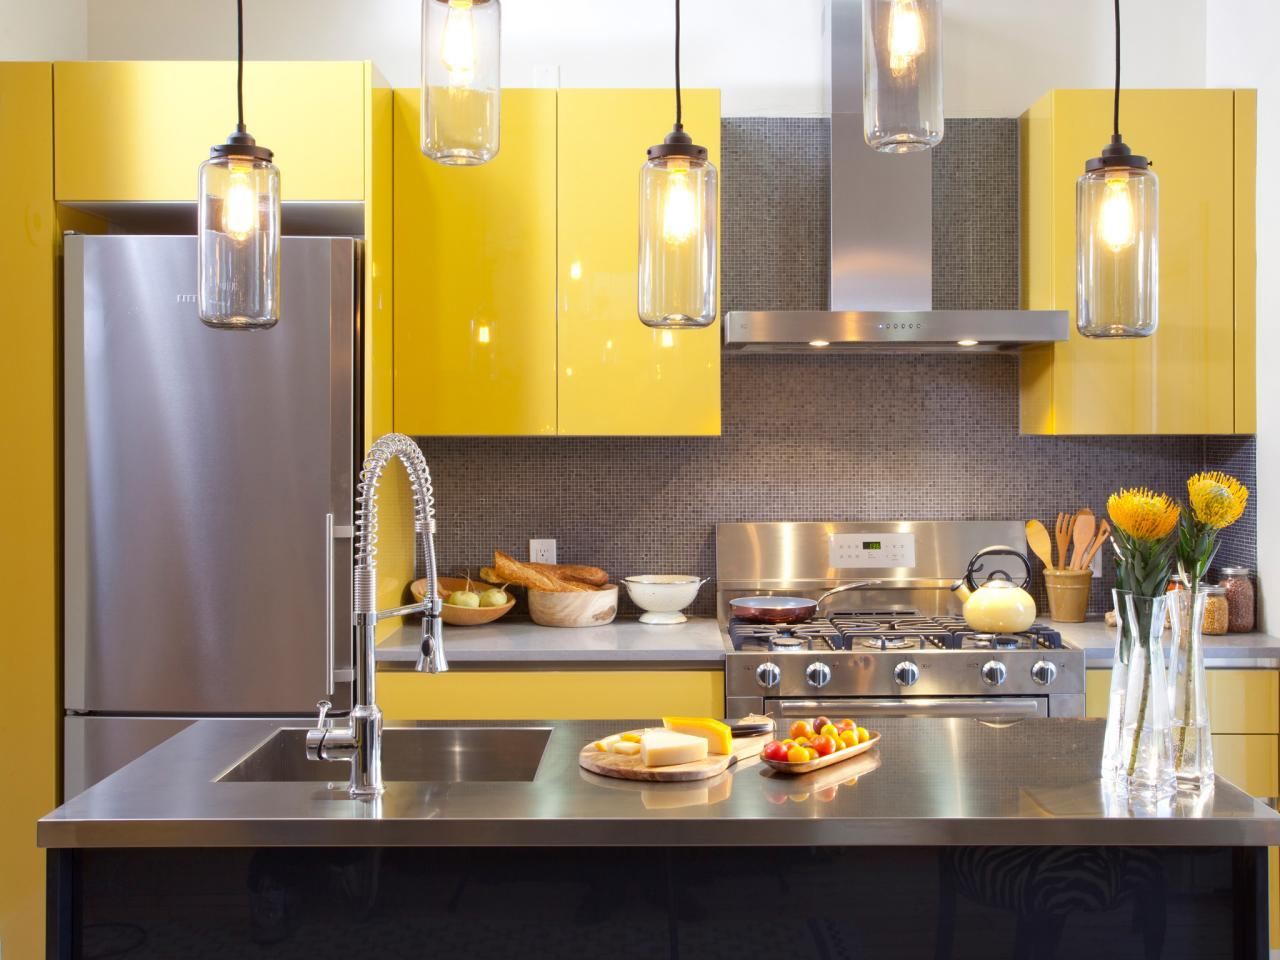 Pleasant Interior Kitchen Cabinets Colors With Yellow Accent also Glass Pendant Lighting